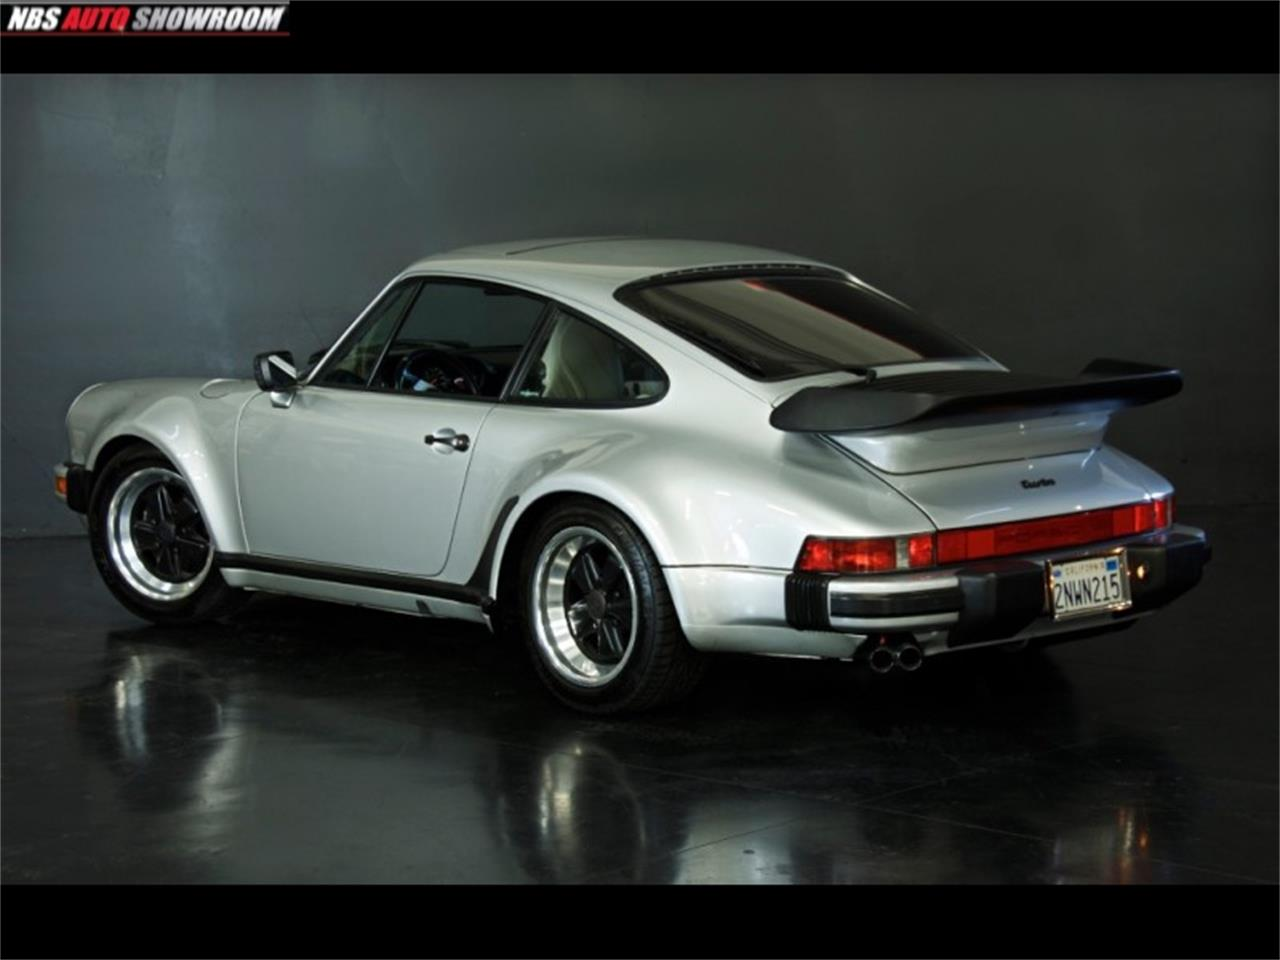 Large Picture of '89 Porsche 911 located in California Offered by NBS Auto Showroom - Q9VO